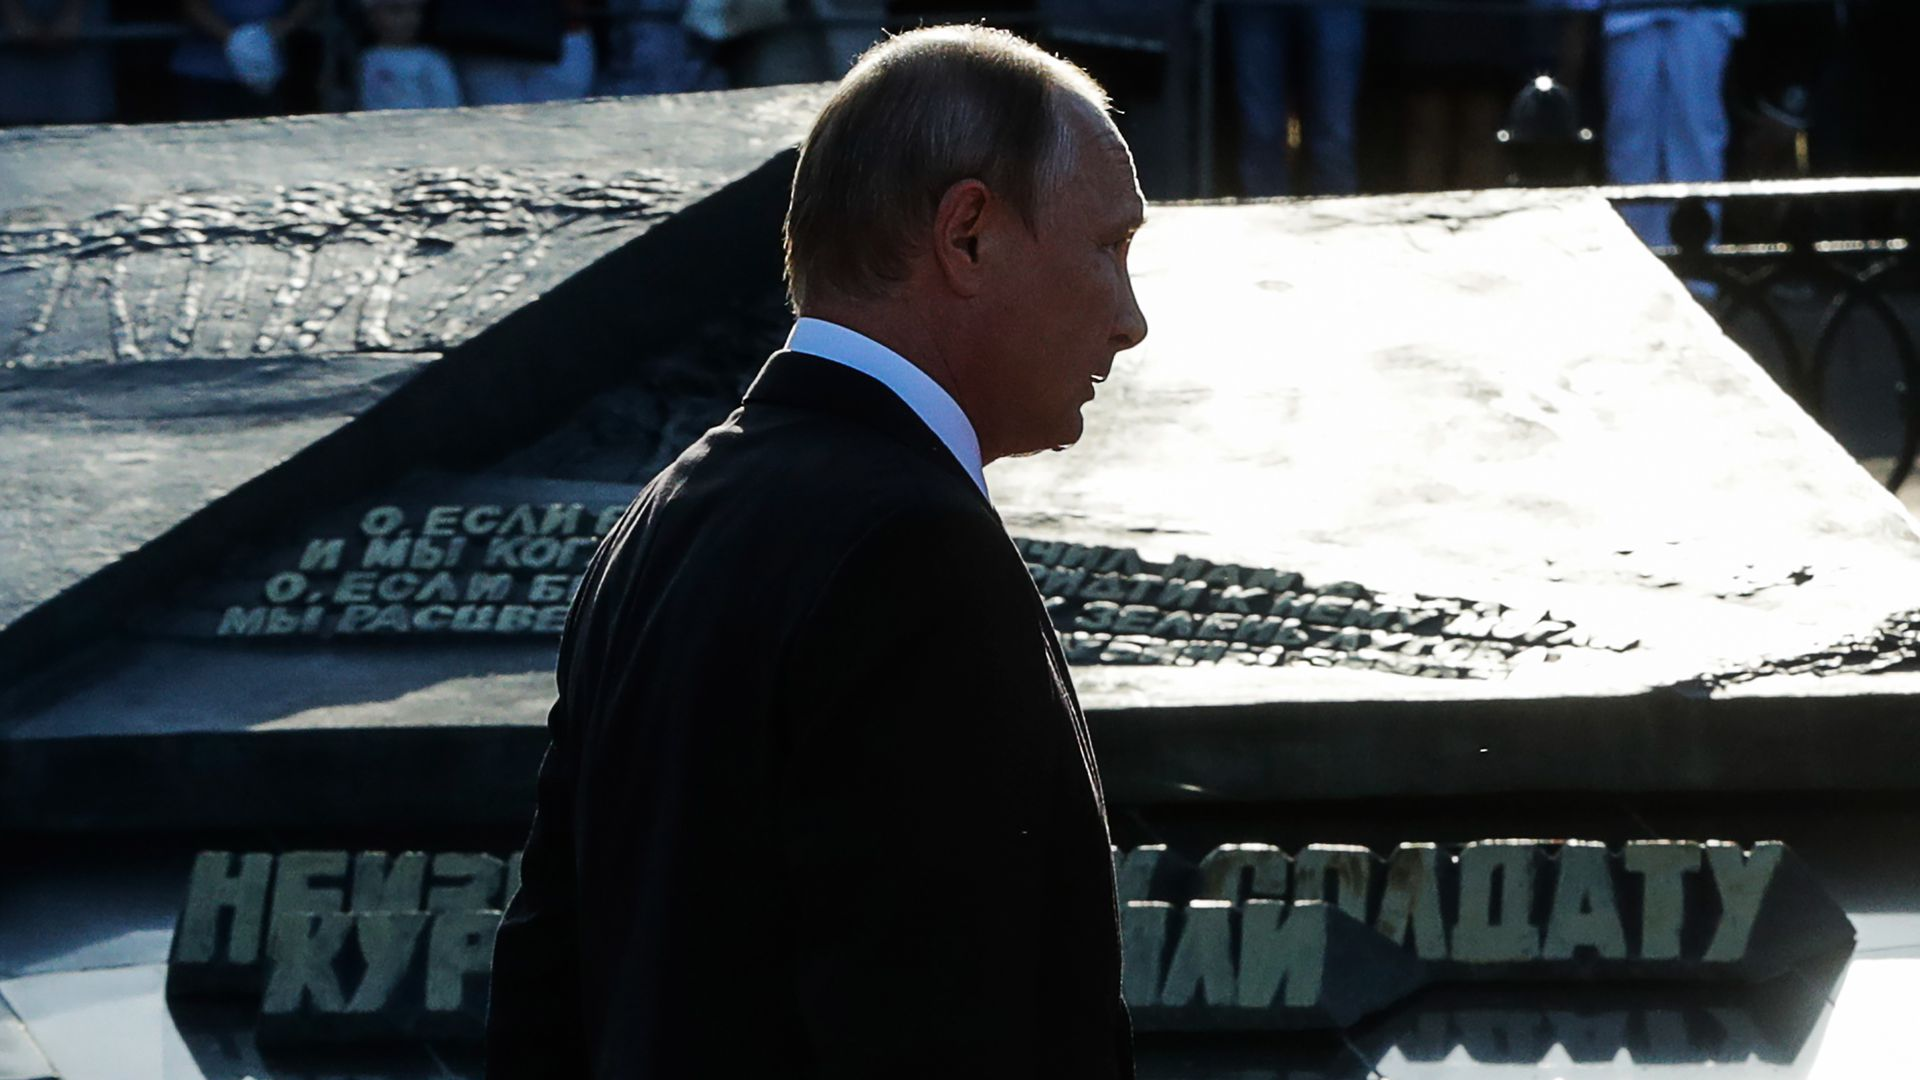 Vladimir Putin's profile as he's walking in a shadow